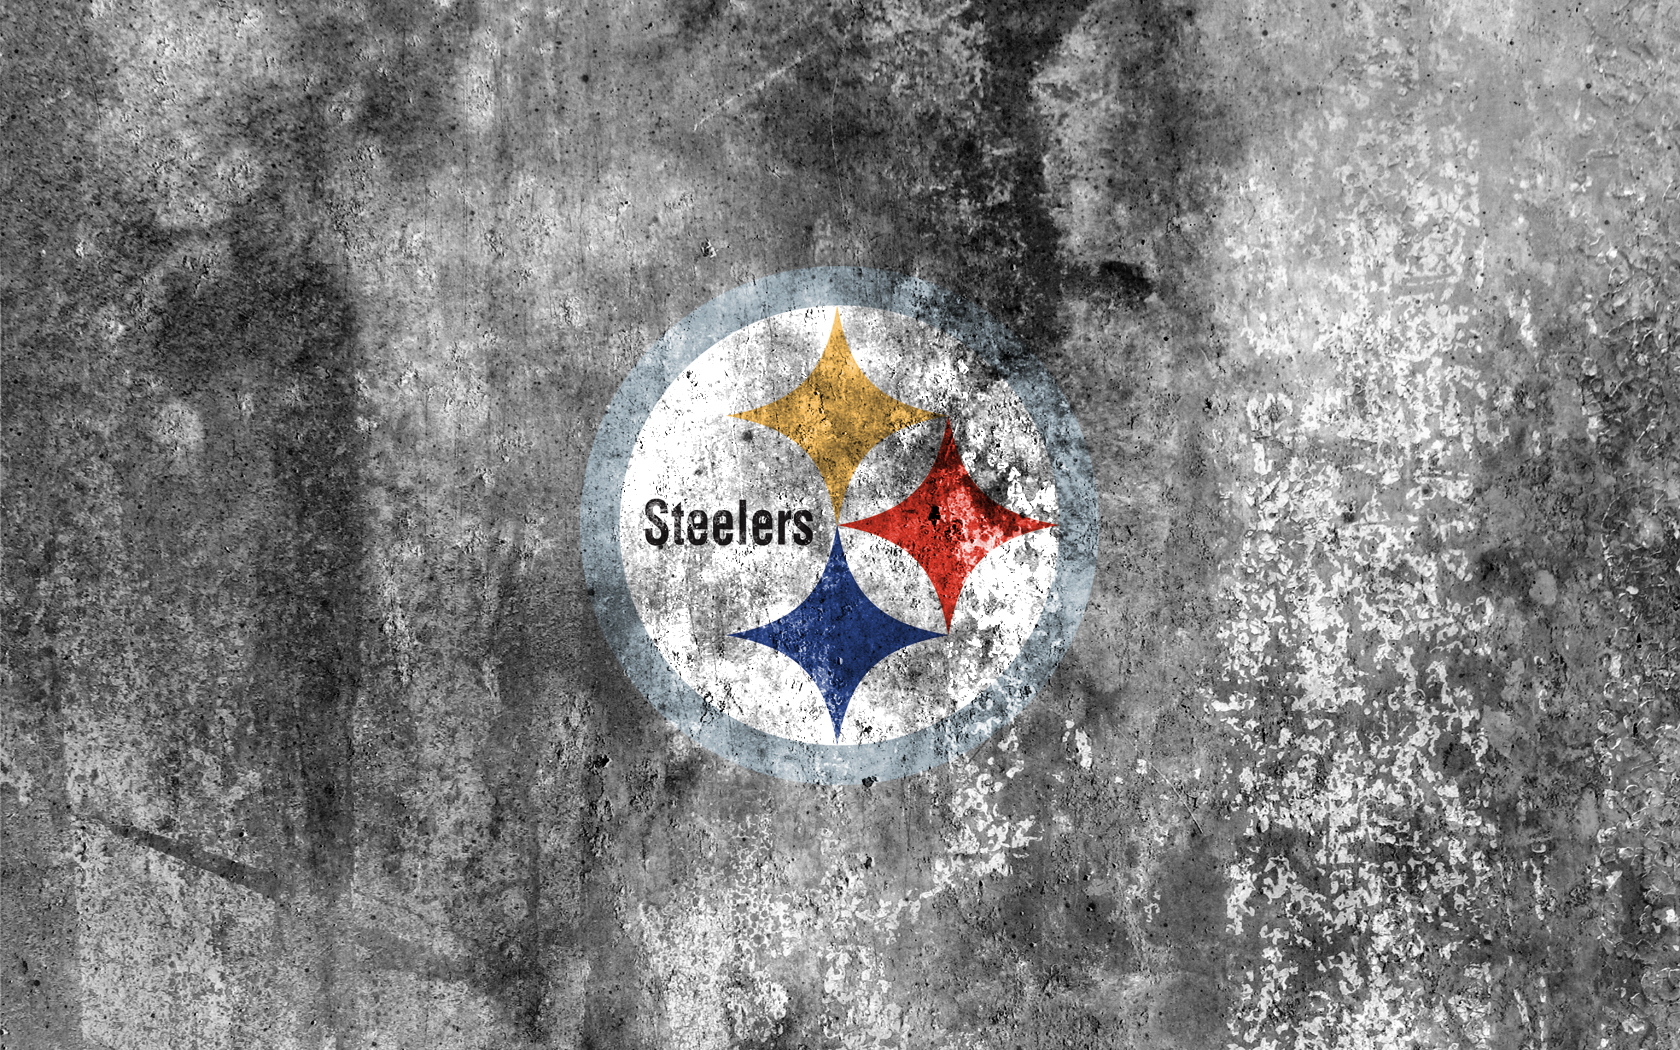 When Is The Full Moon In December 2017 >> 8 HD Pittsburgh Steelers Wallpapers